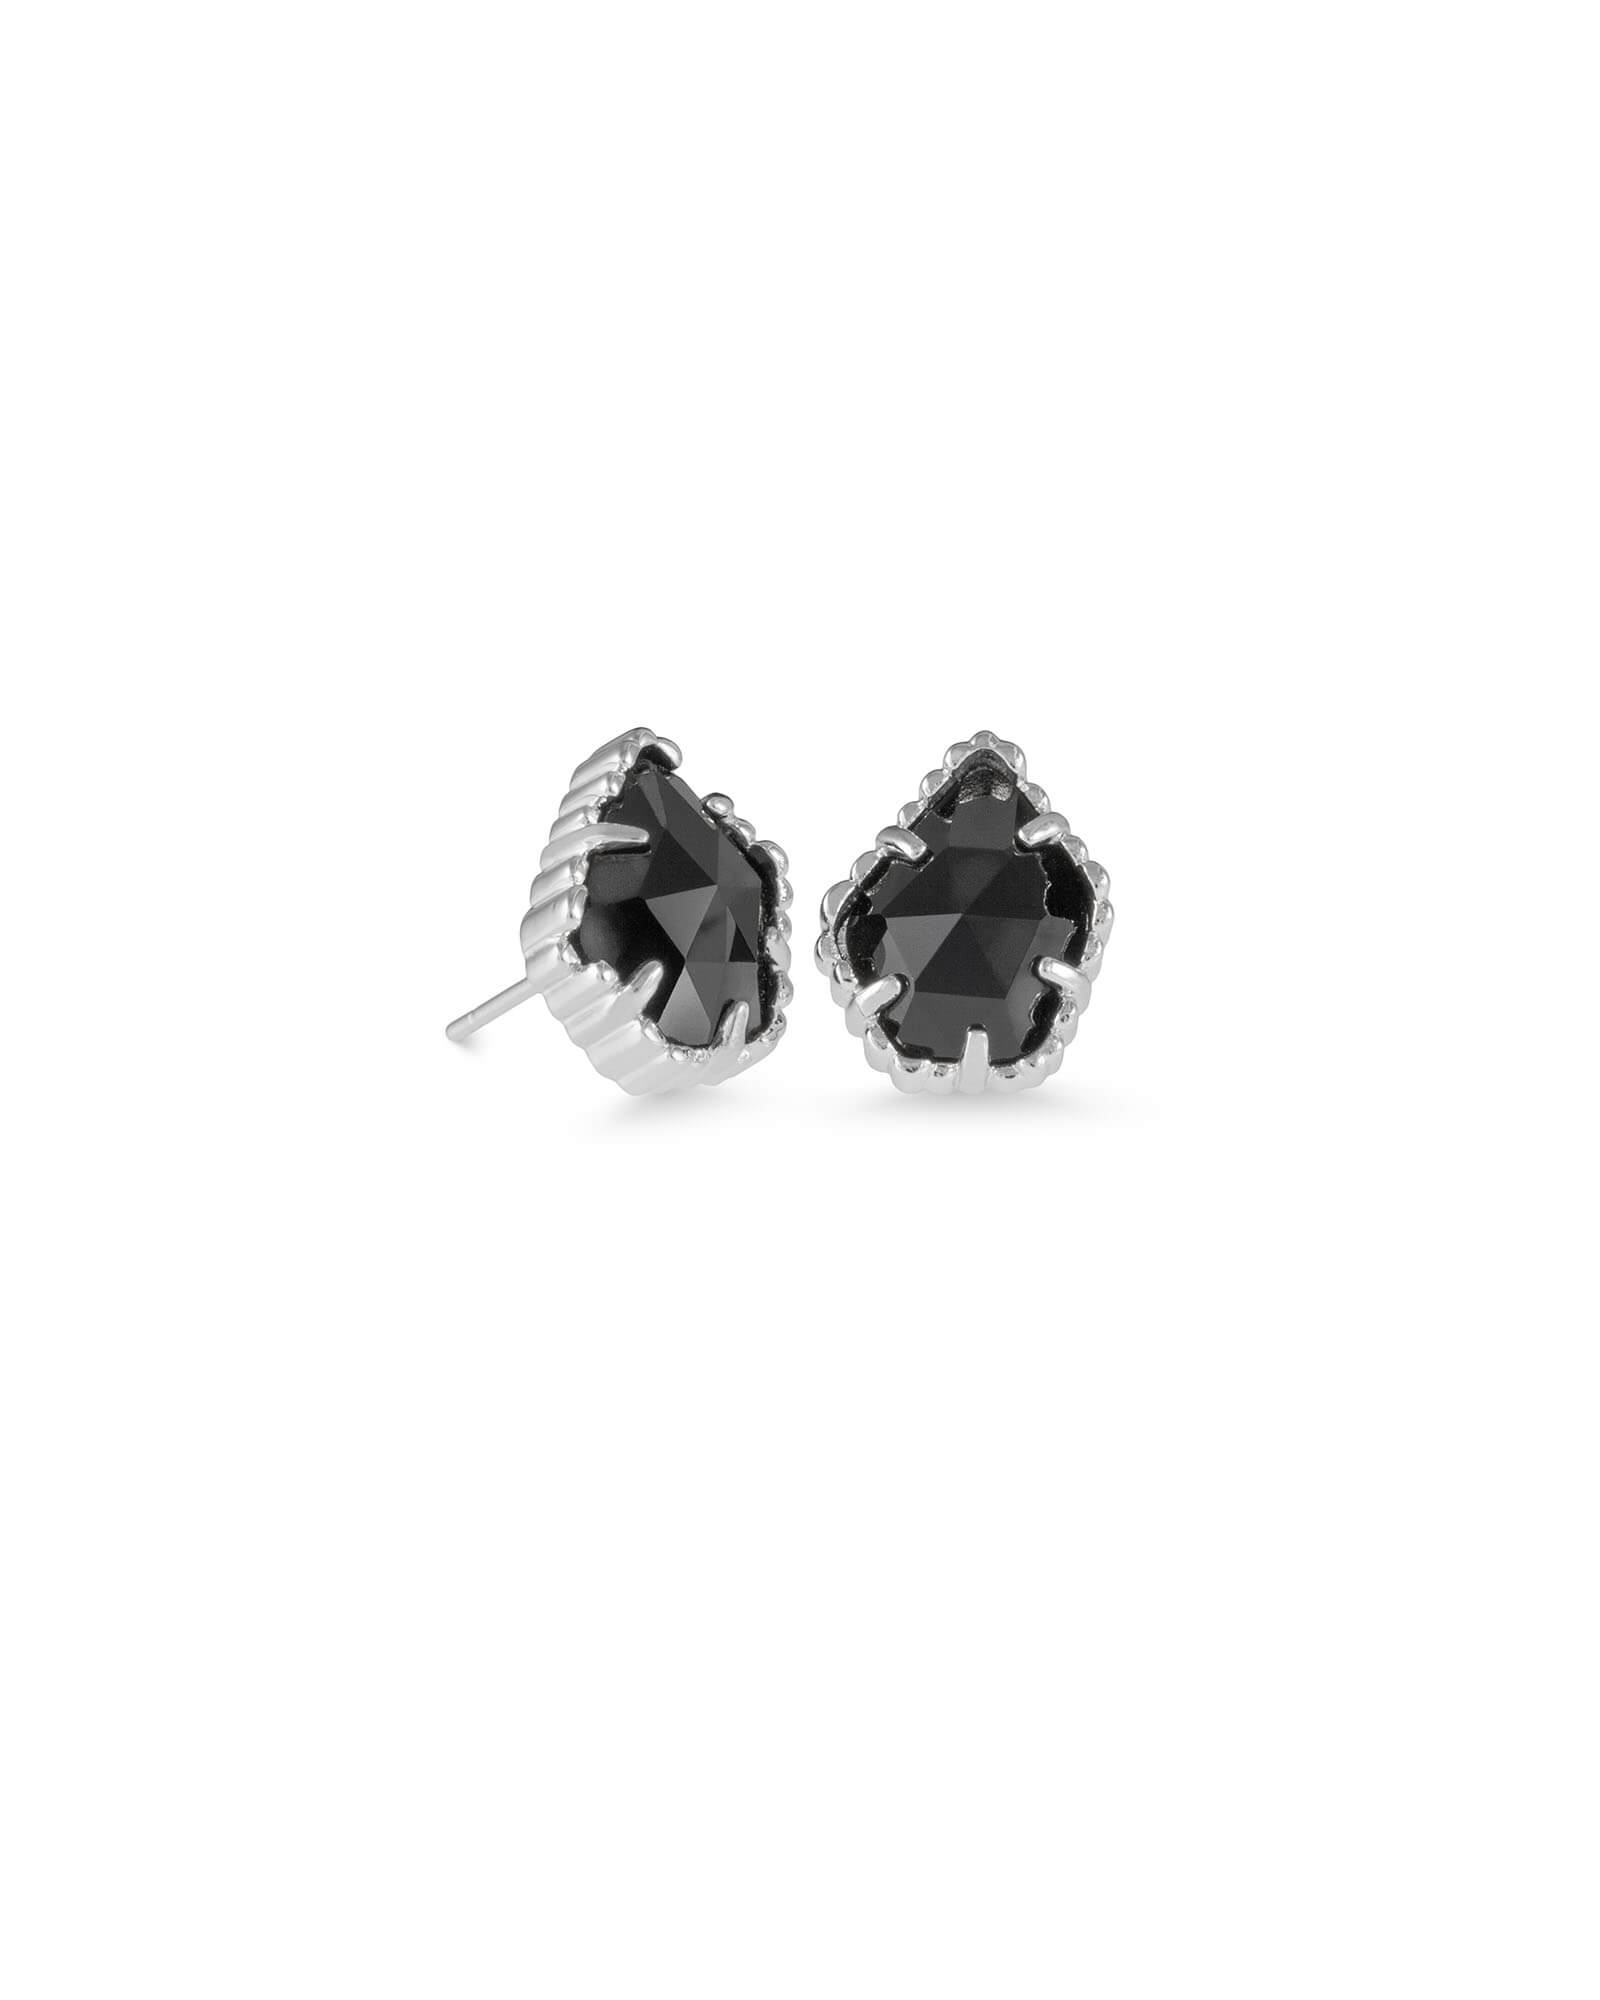 Tessa Silver Stud Earrings in Black Opaque Glass